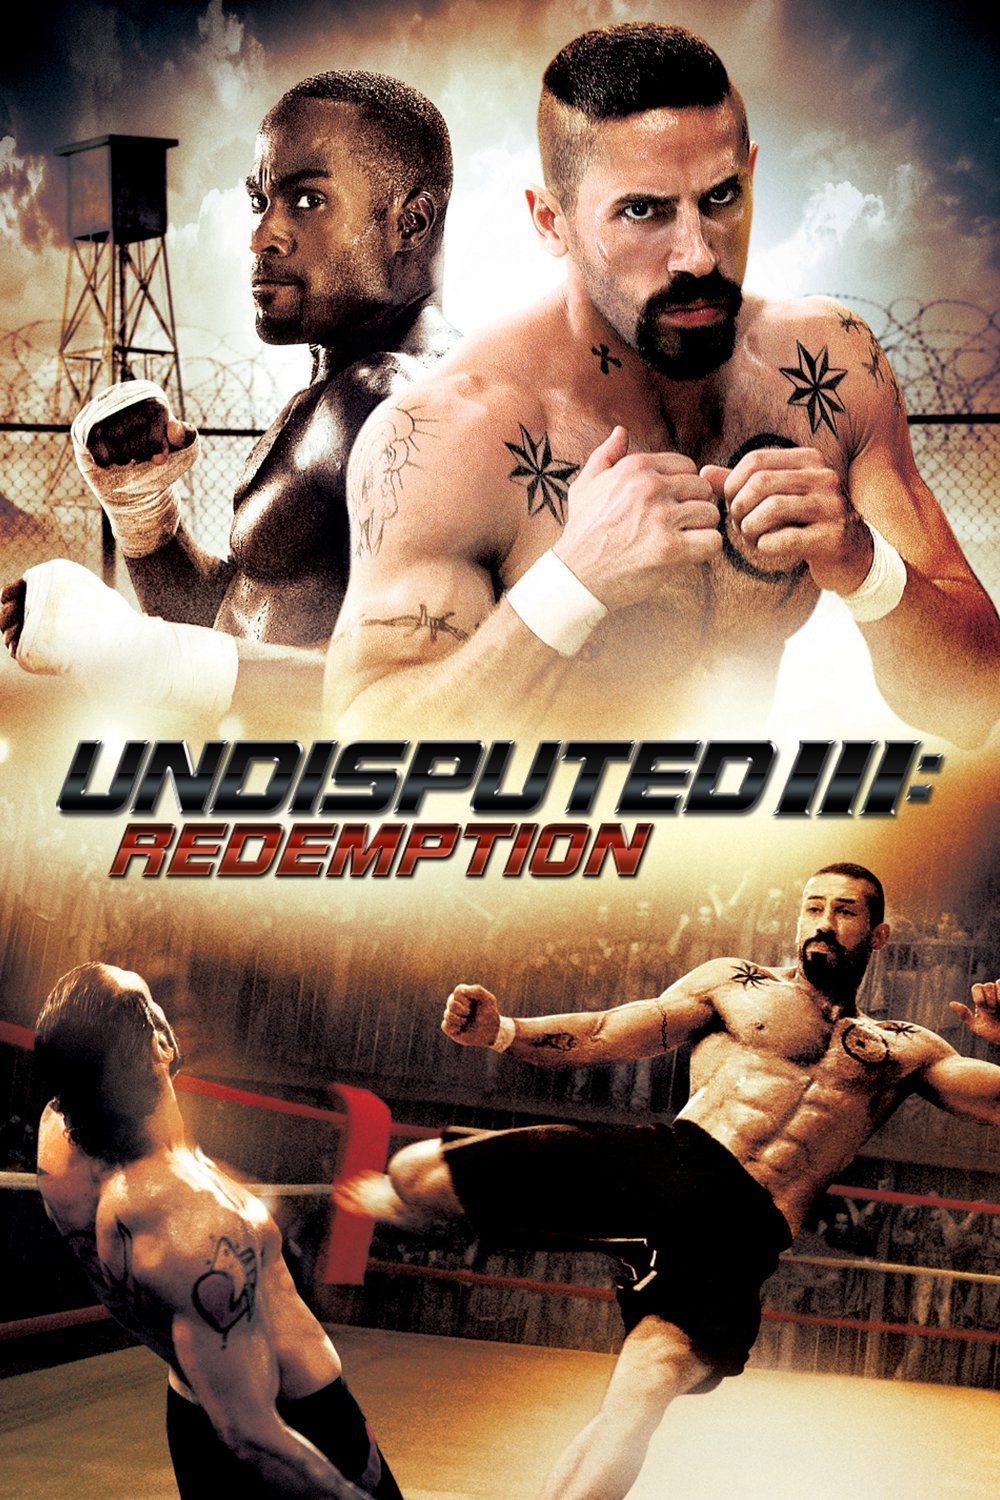 image Undisputed III: Redemption Watch Full Movie Free Online